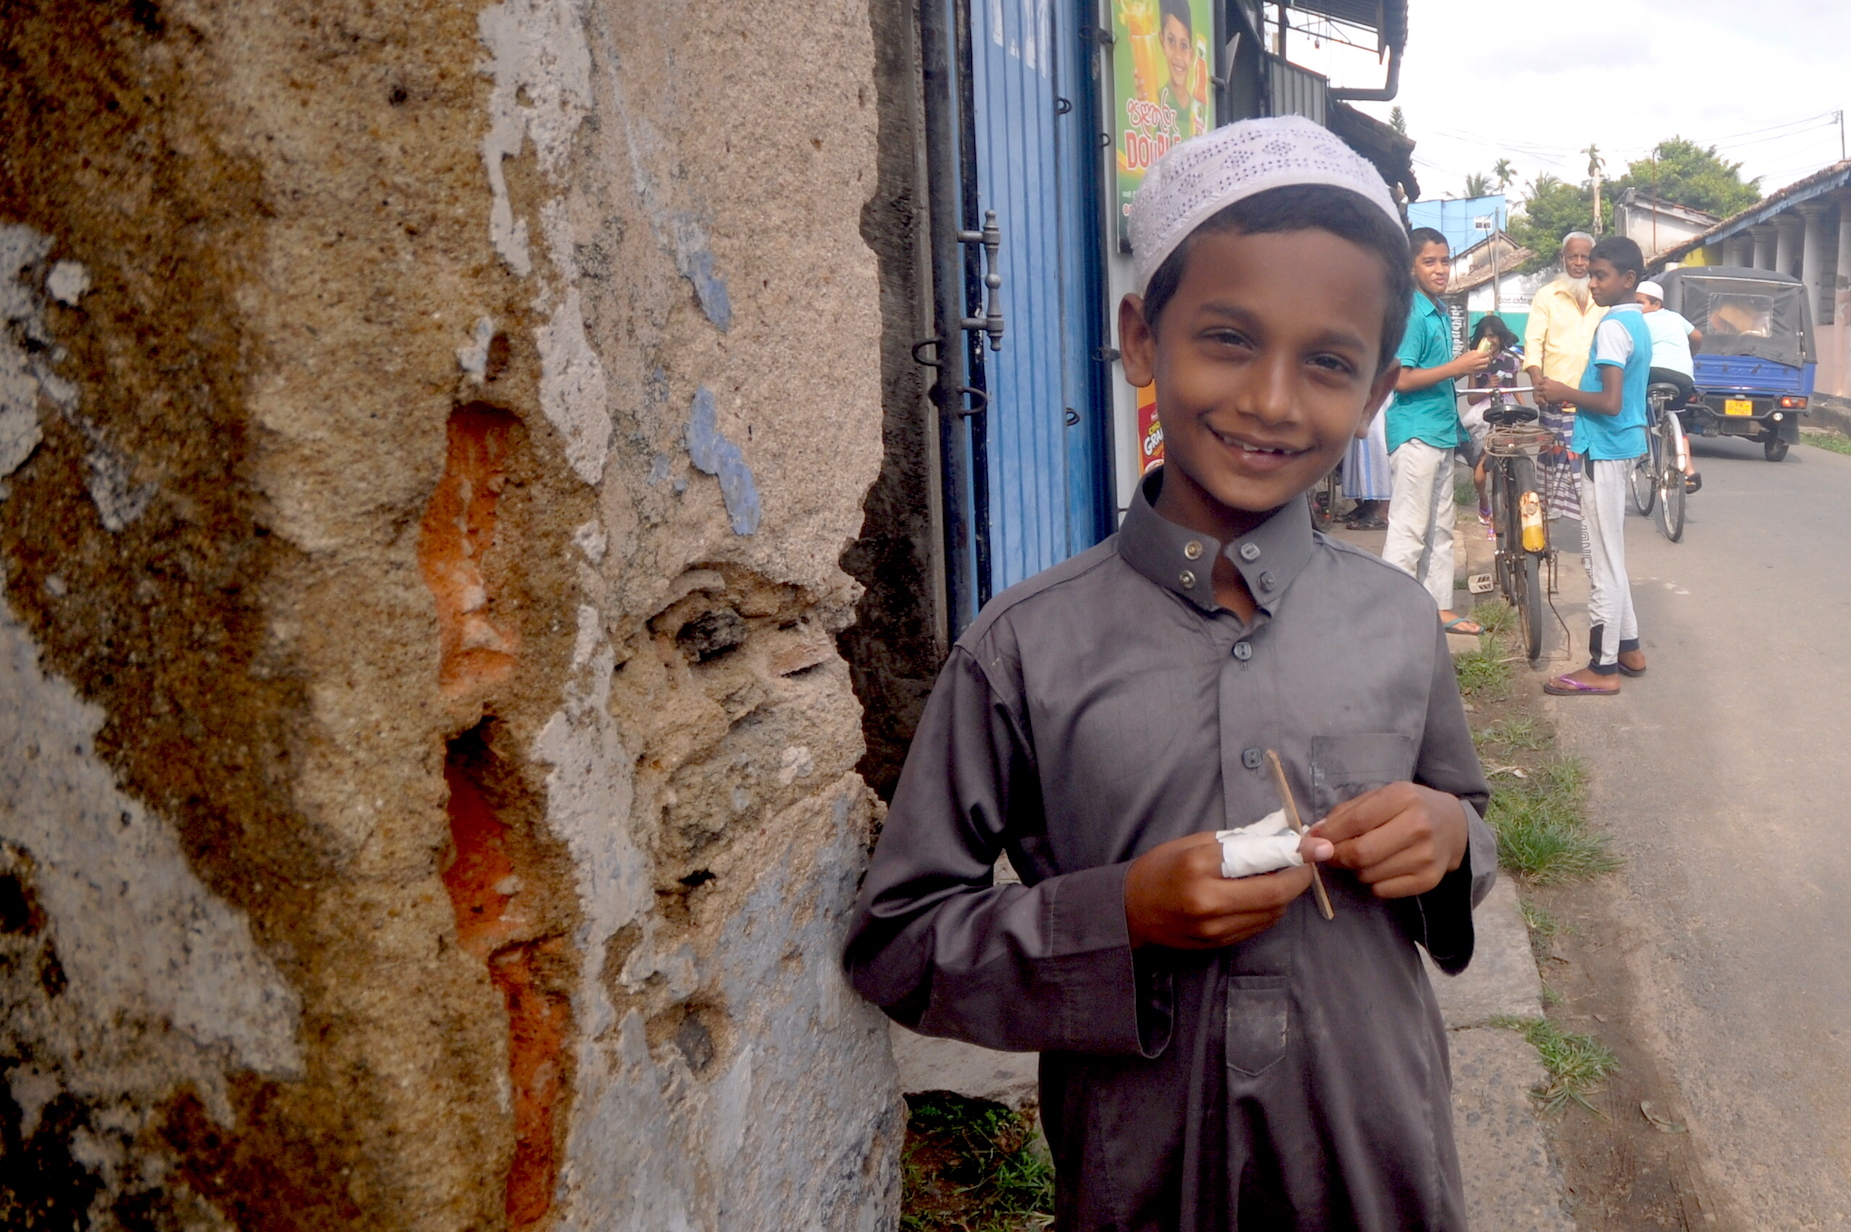 A young Muslim boy in Weligama, Sri Lanka